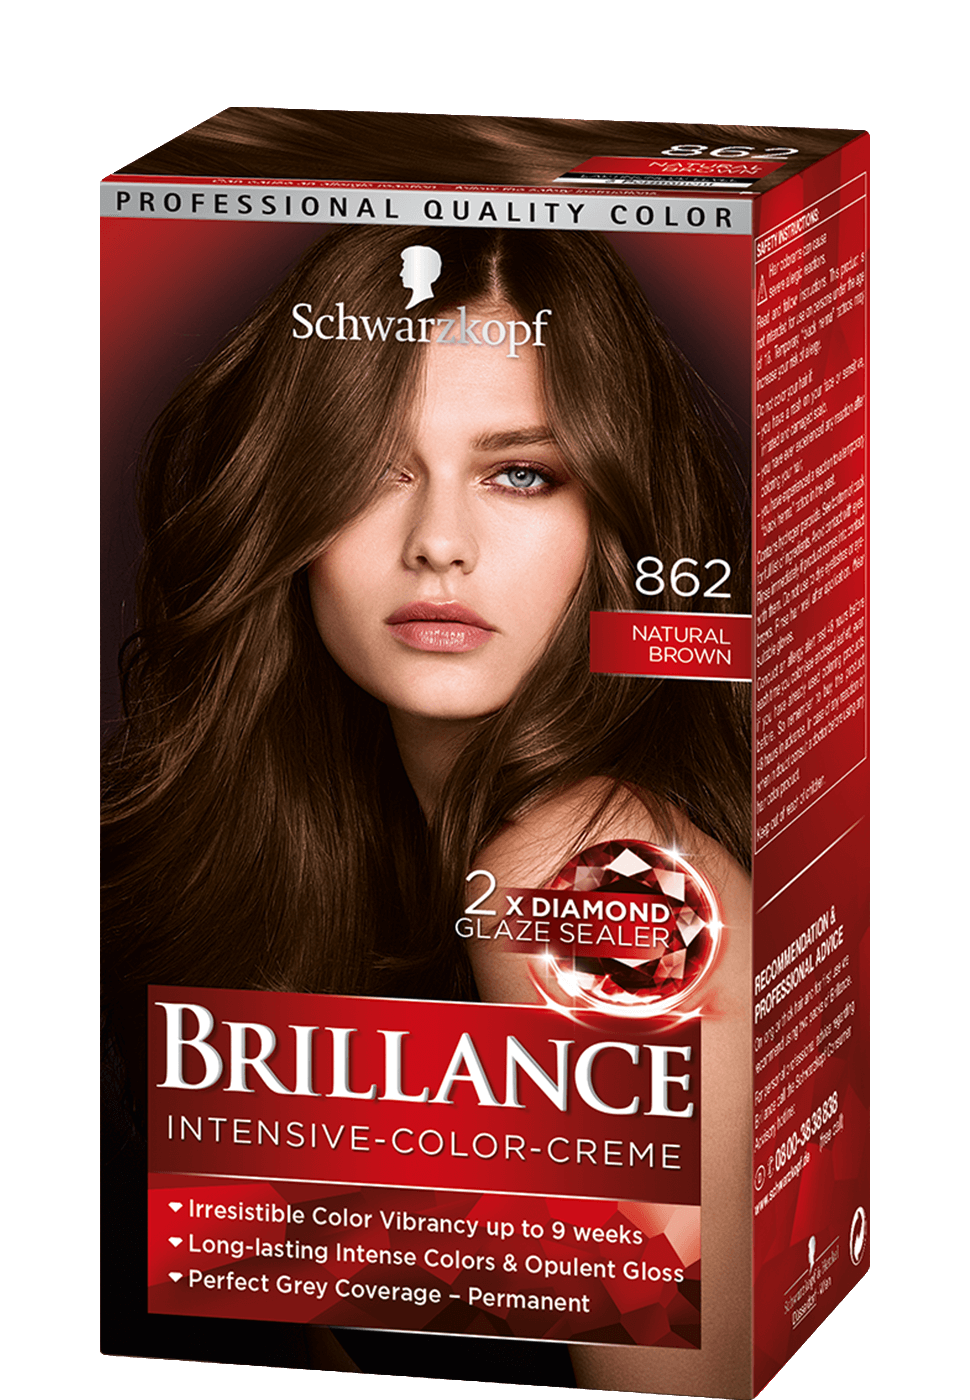 brillance_com_intensive_color_creme_862_natural_brown_970x1400